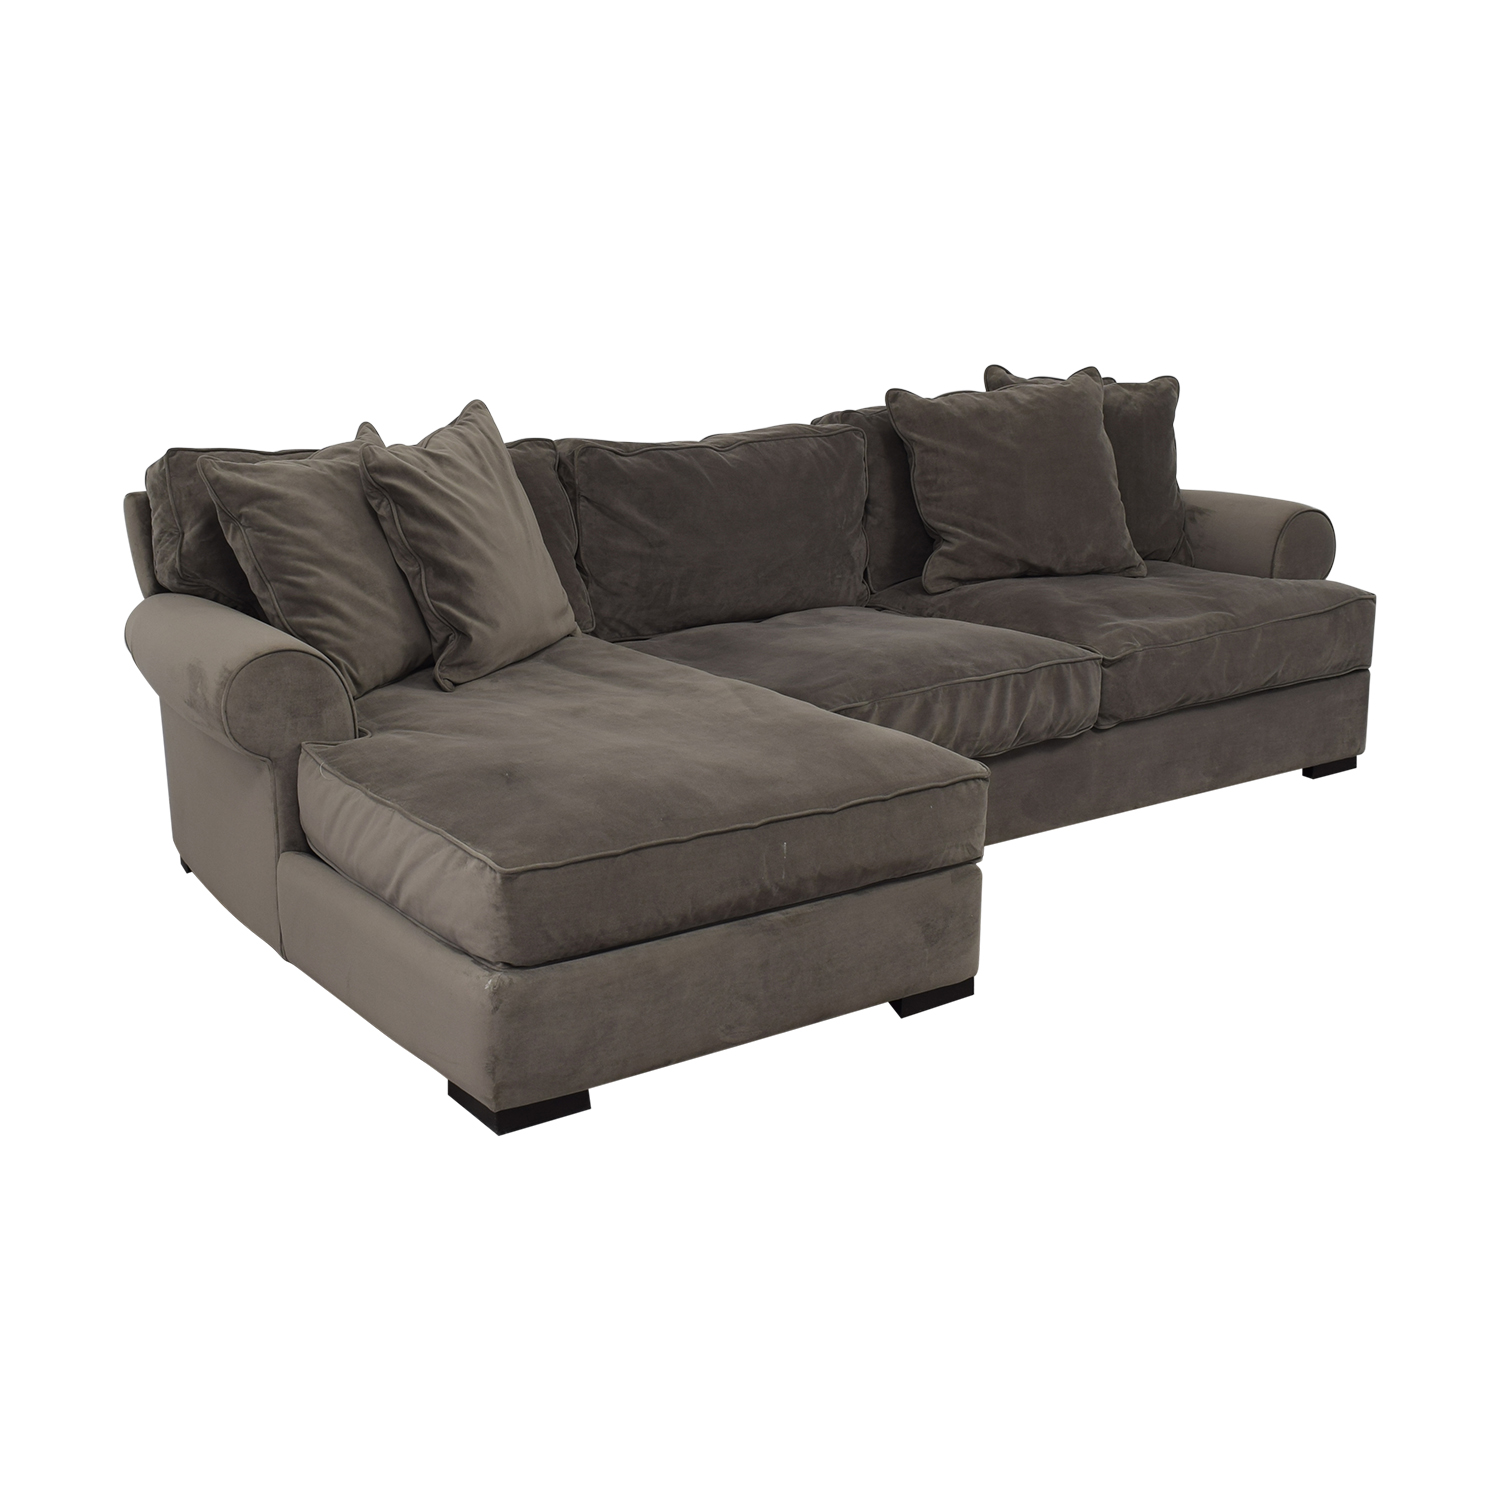 Raymour & Flanigan Raymour & Flanigan Kipling Chenille Sectional price